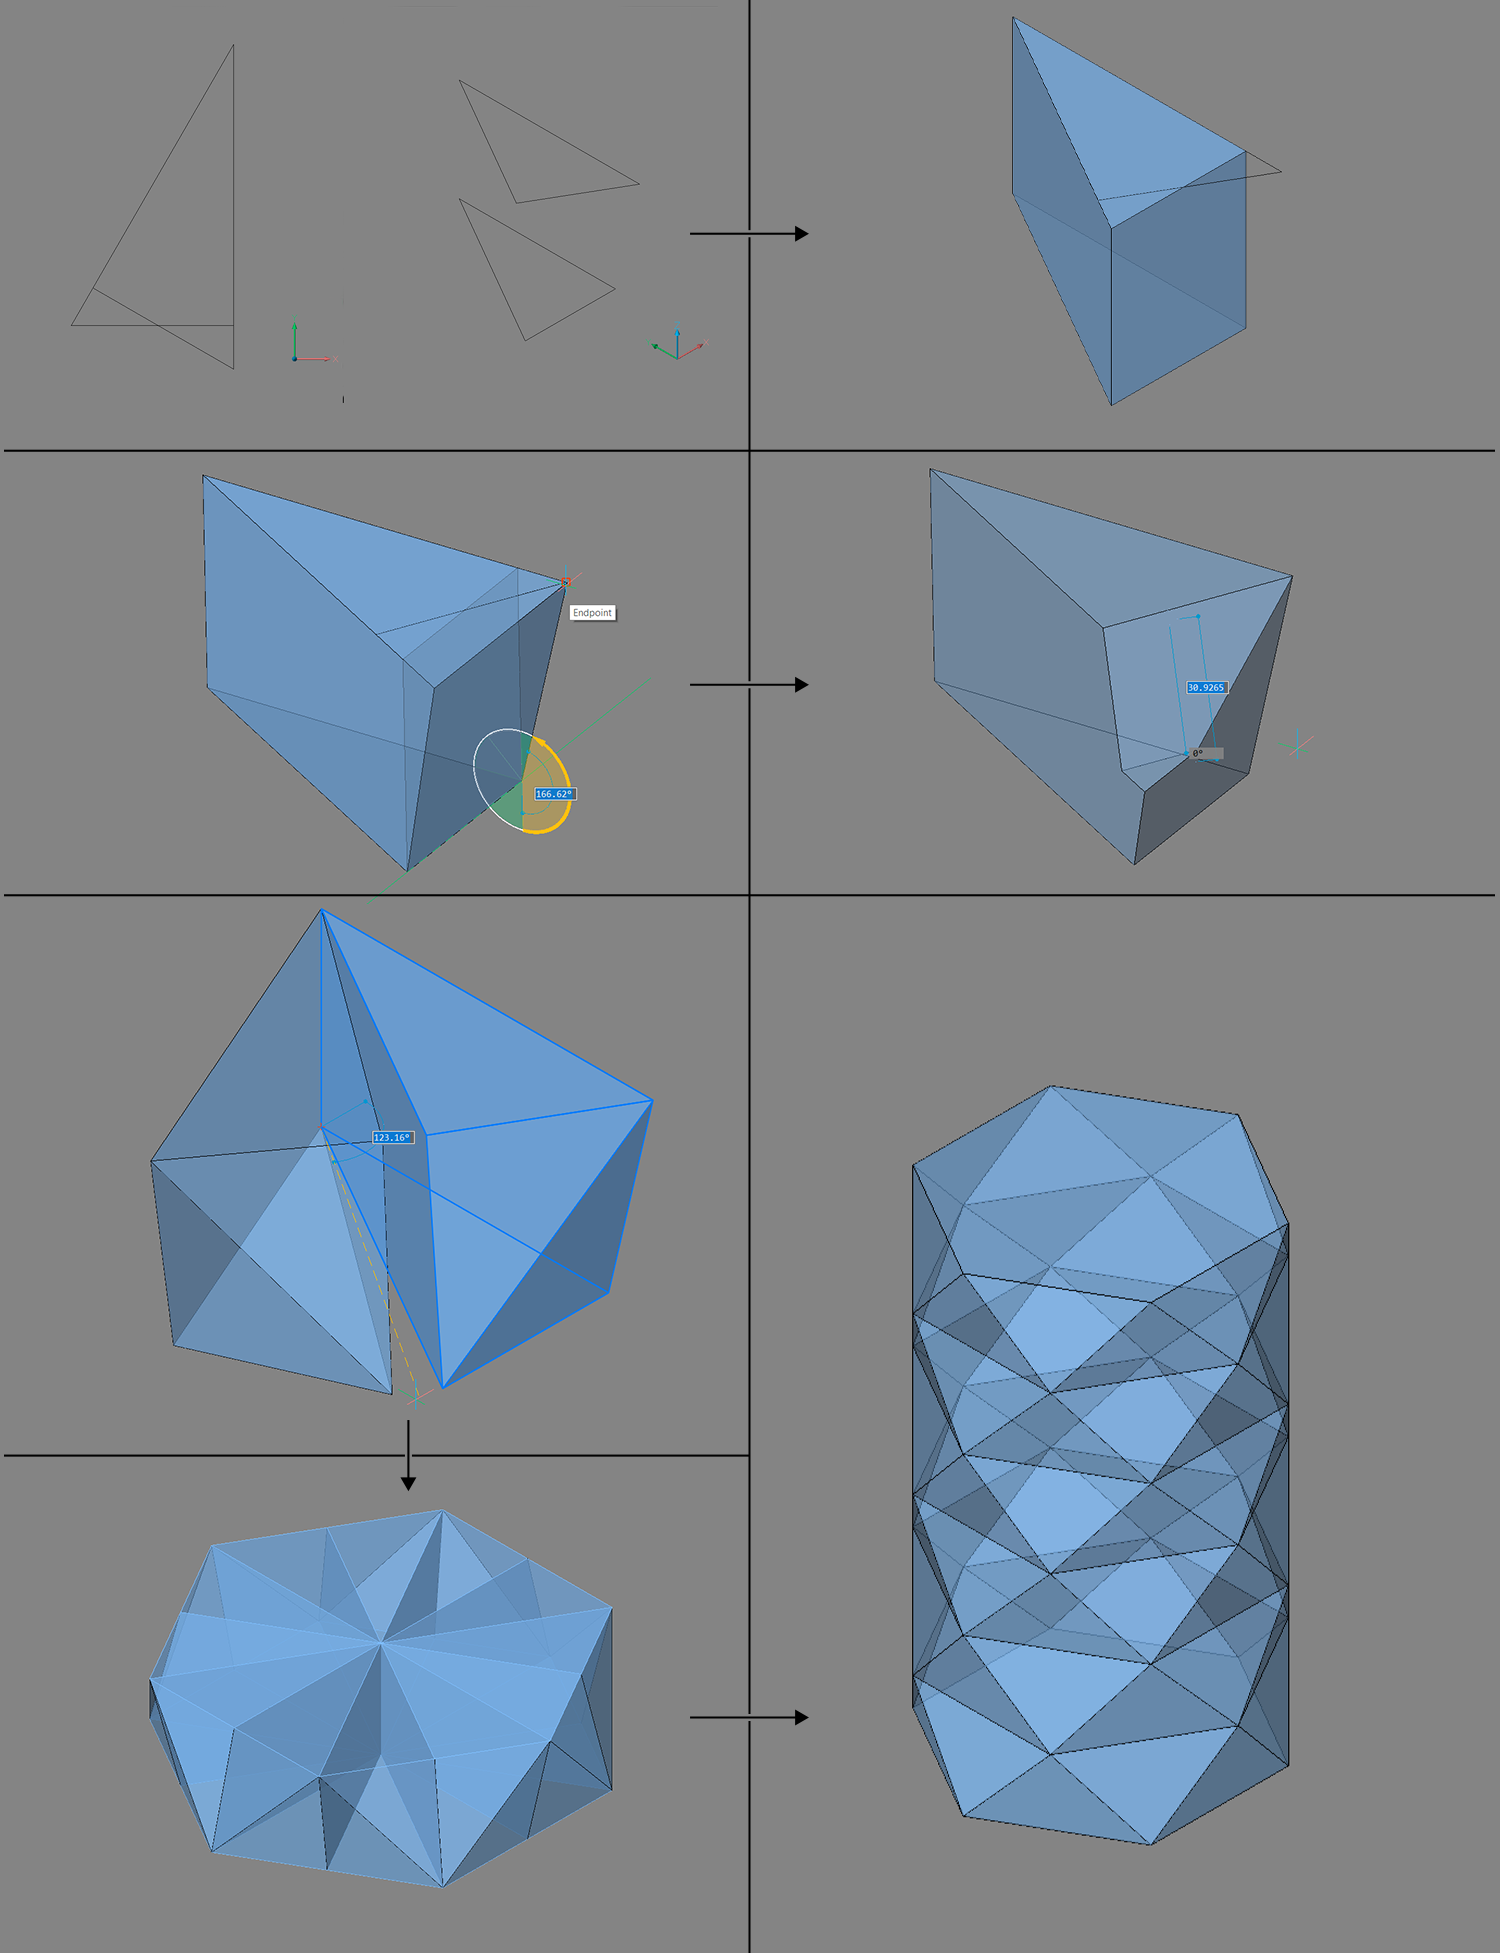 instructions on how to create an object with solids in BricsCAD